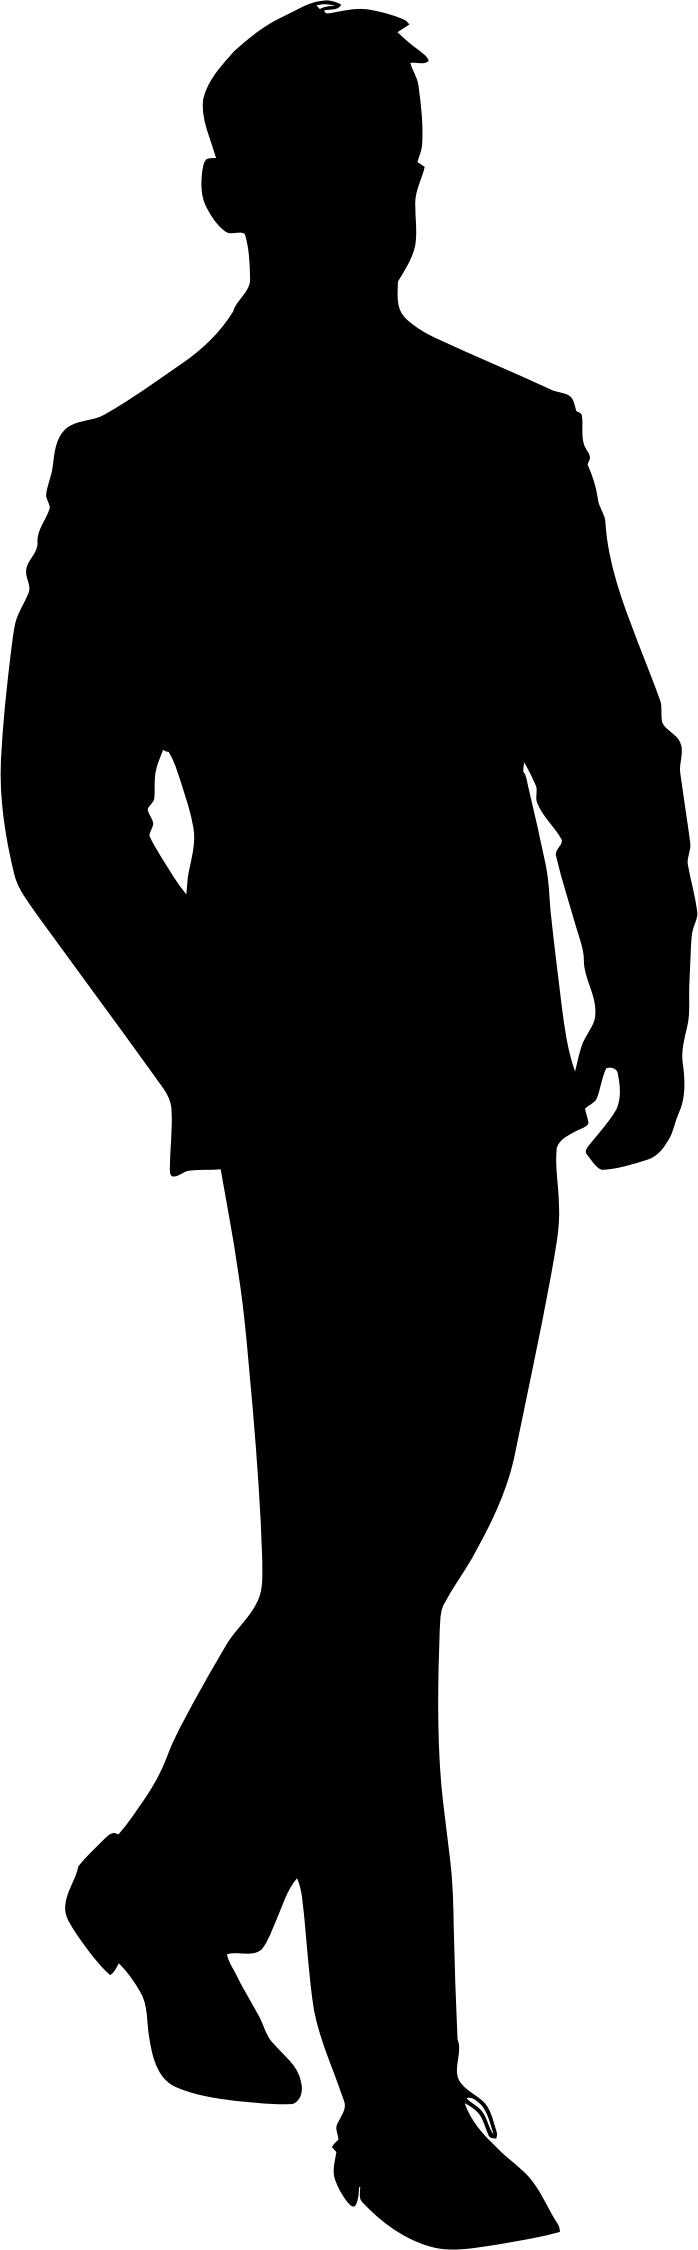 698x2250 Man In Suit Silhouette Icons Png